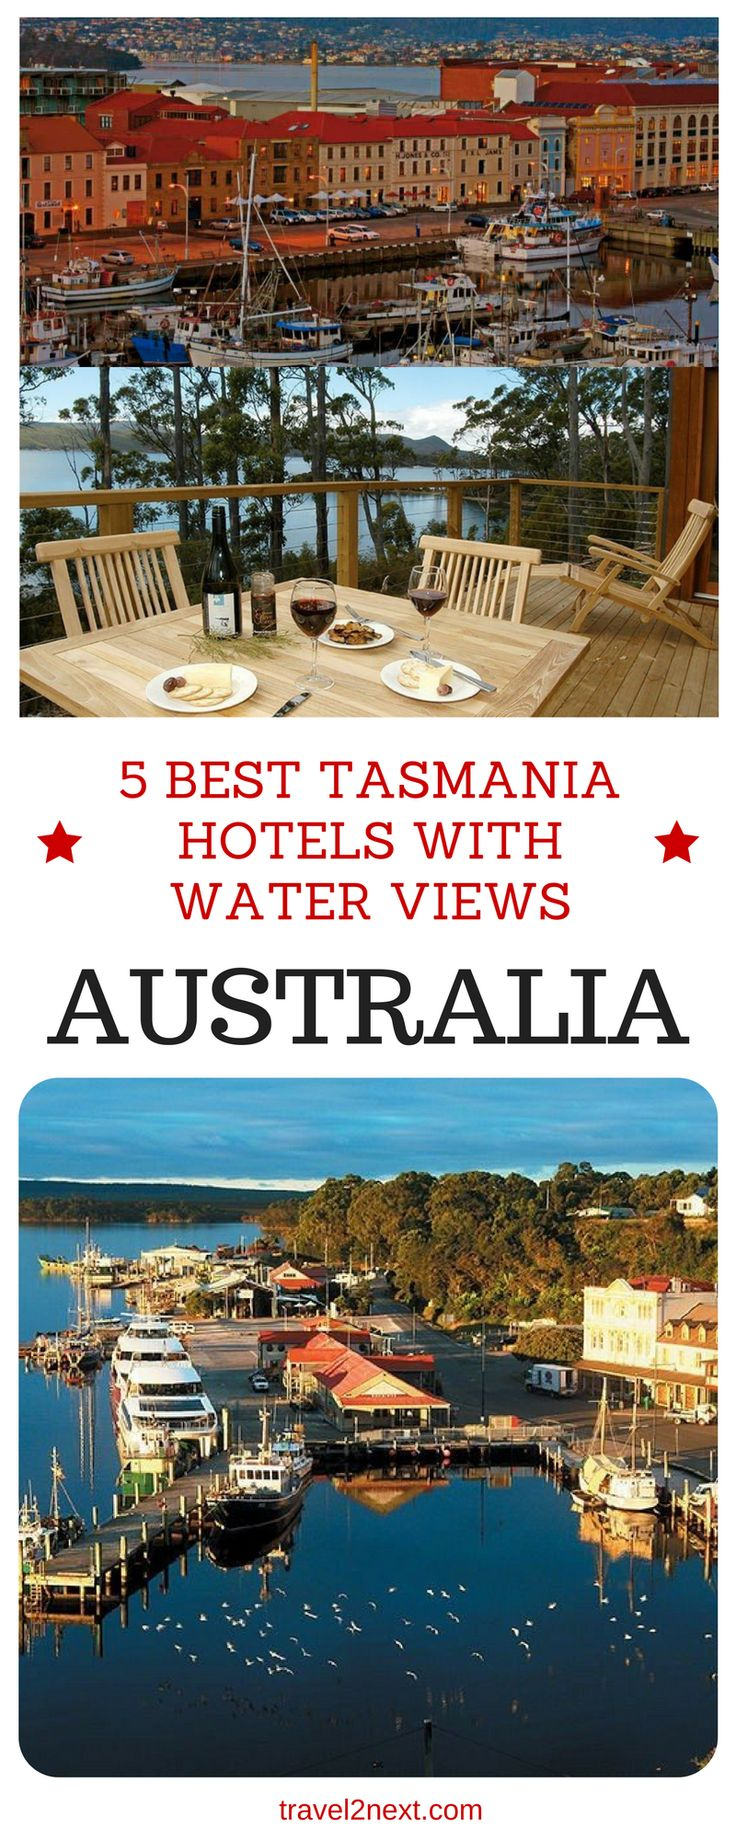 Best My Beautiful Australia Images On Pinterest Travel - The 5 best places to buy property in australia